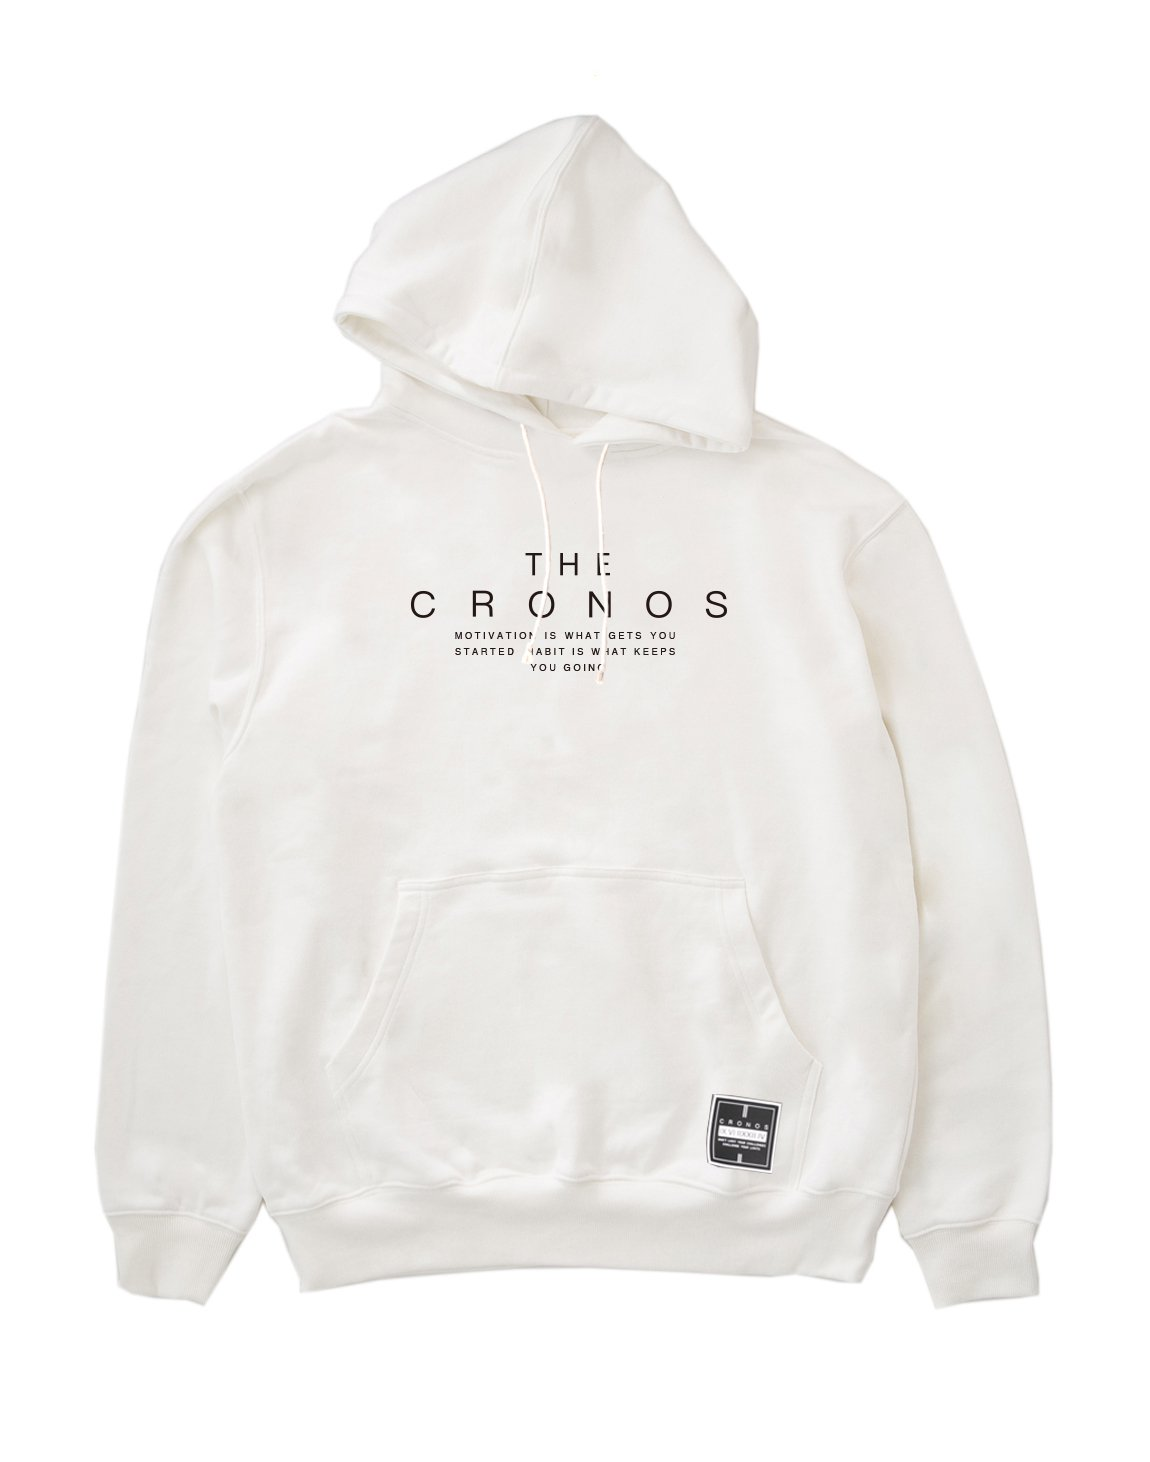 CRONOS SENTENCE PULL OVER PARKA 【WHITE】<img class='new_mark_img2' src='https://img.shop-pro.jp/img/new/icons1.gif' style='border:none;display:inline;margin:0px;padding:0px;width:auto;' />